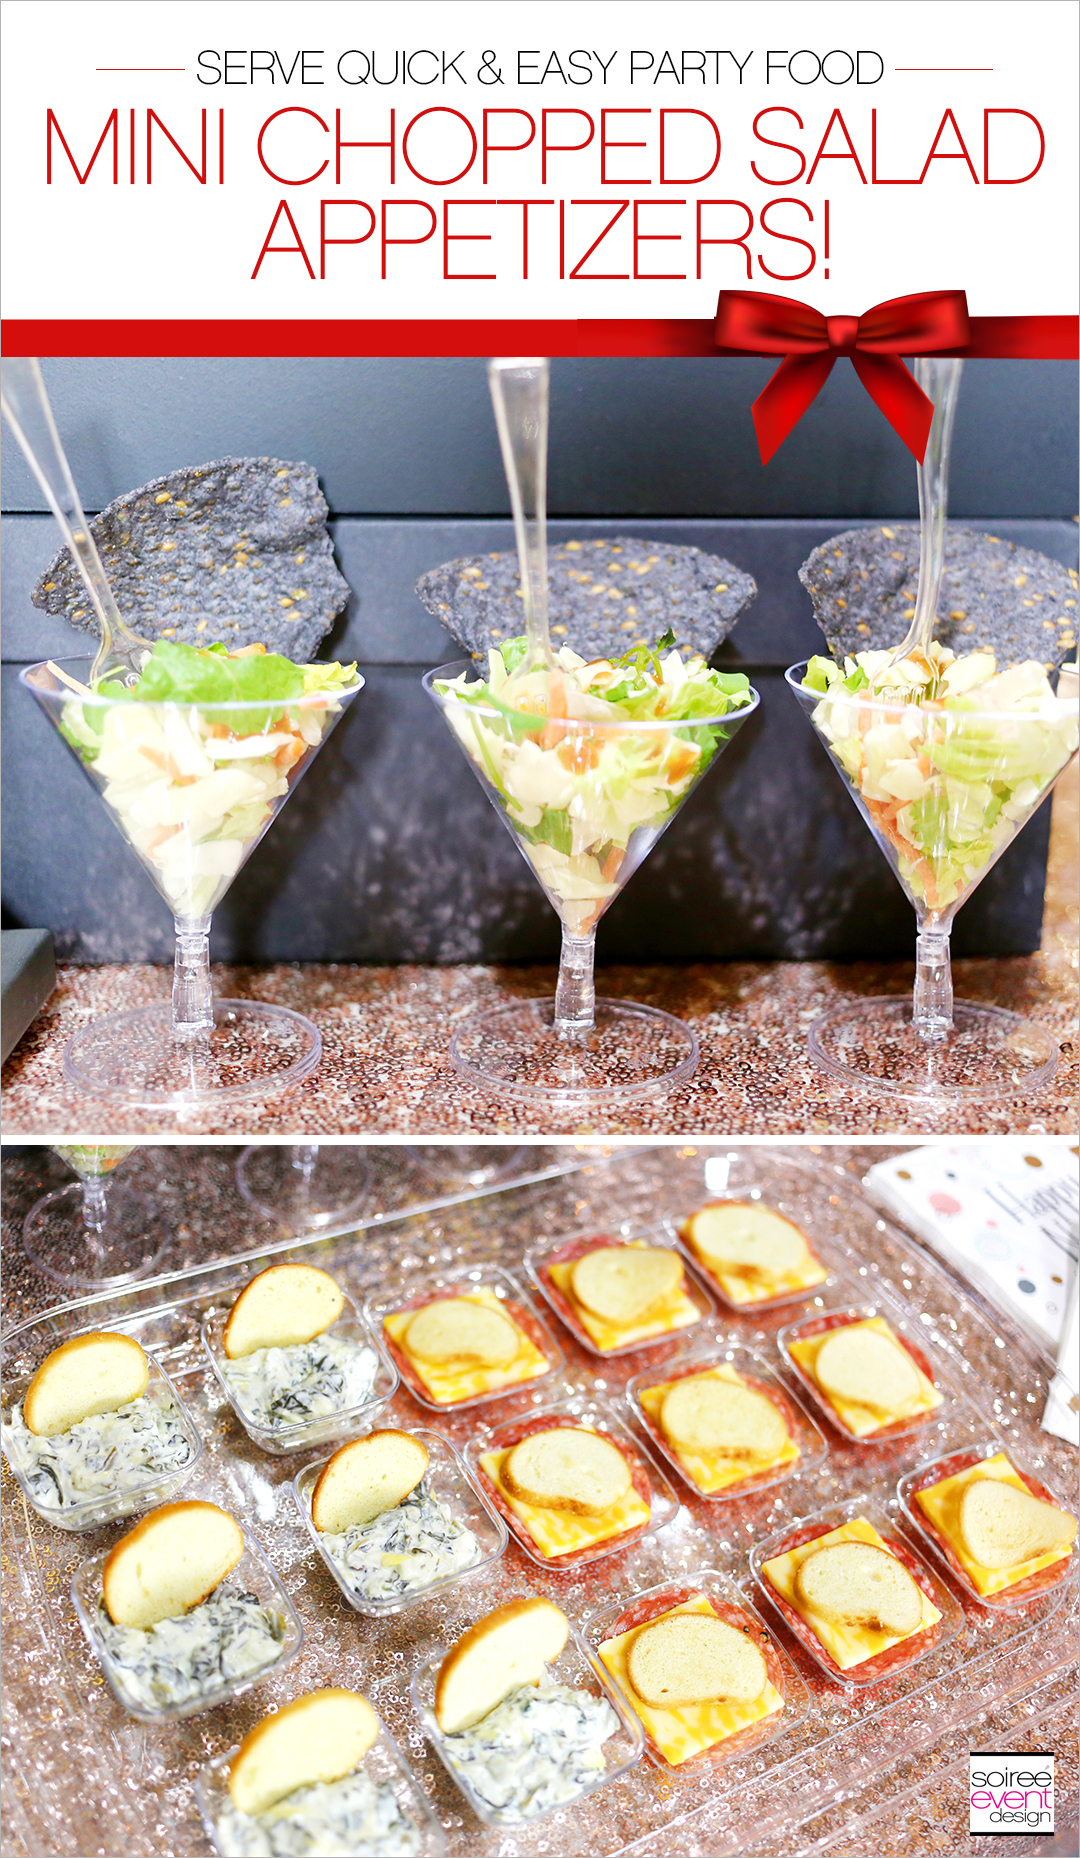 Mini Chopped Salad Appetizers